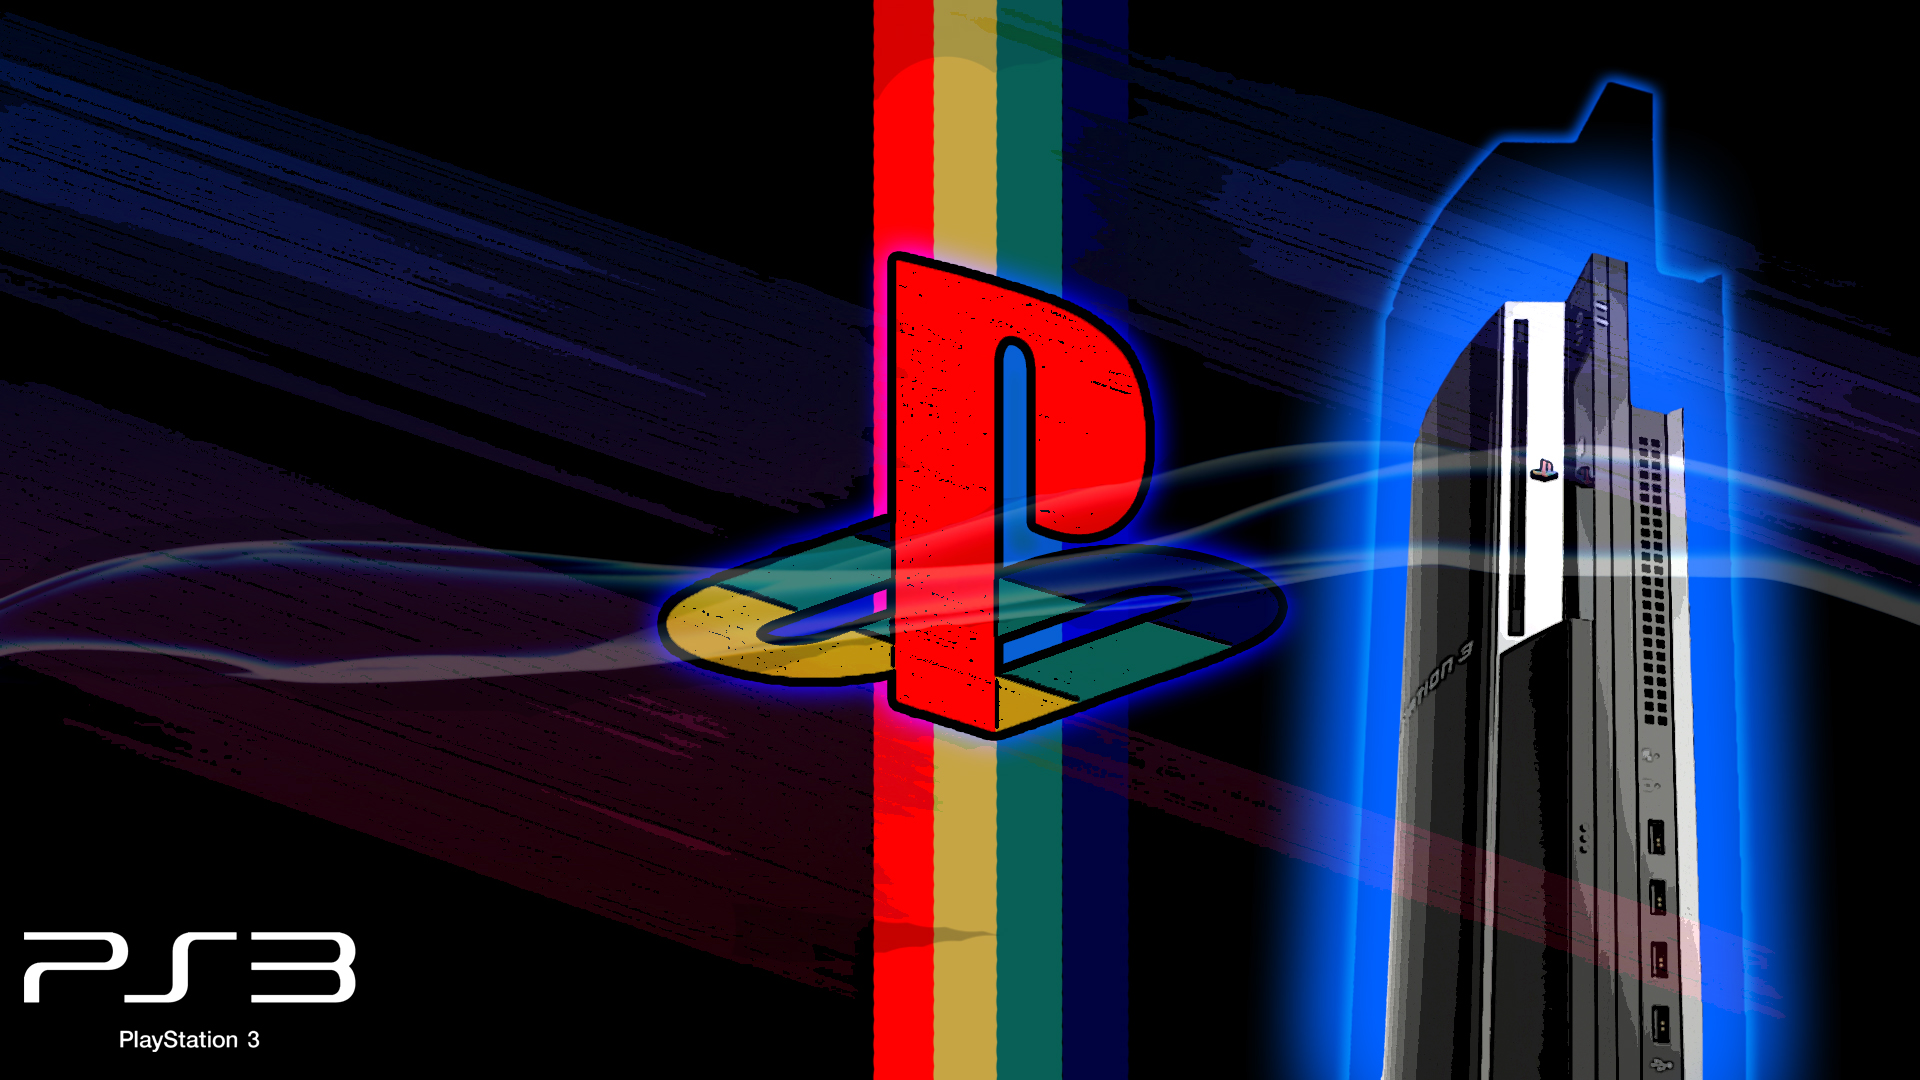 PS Logo and PS3 Wallpapers